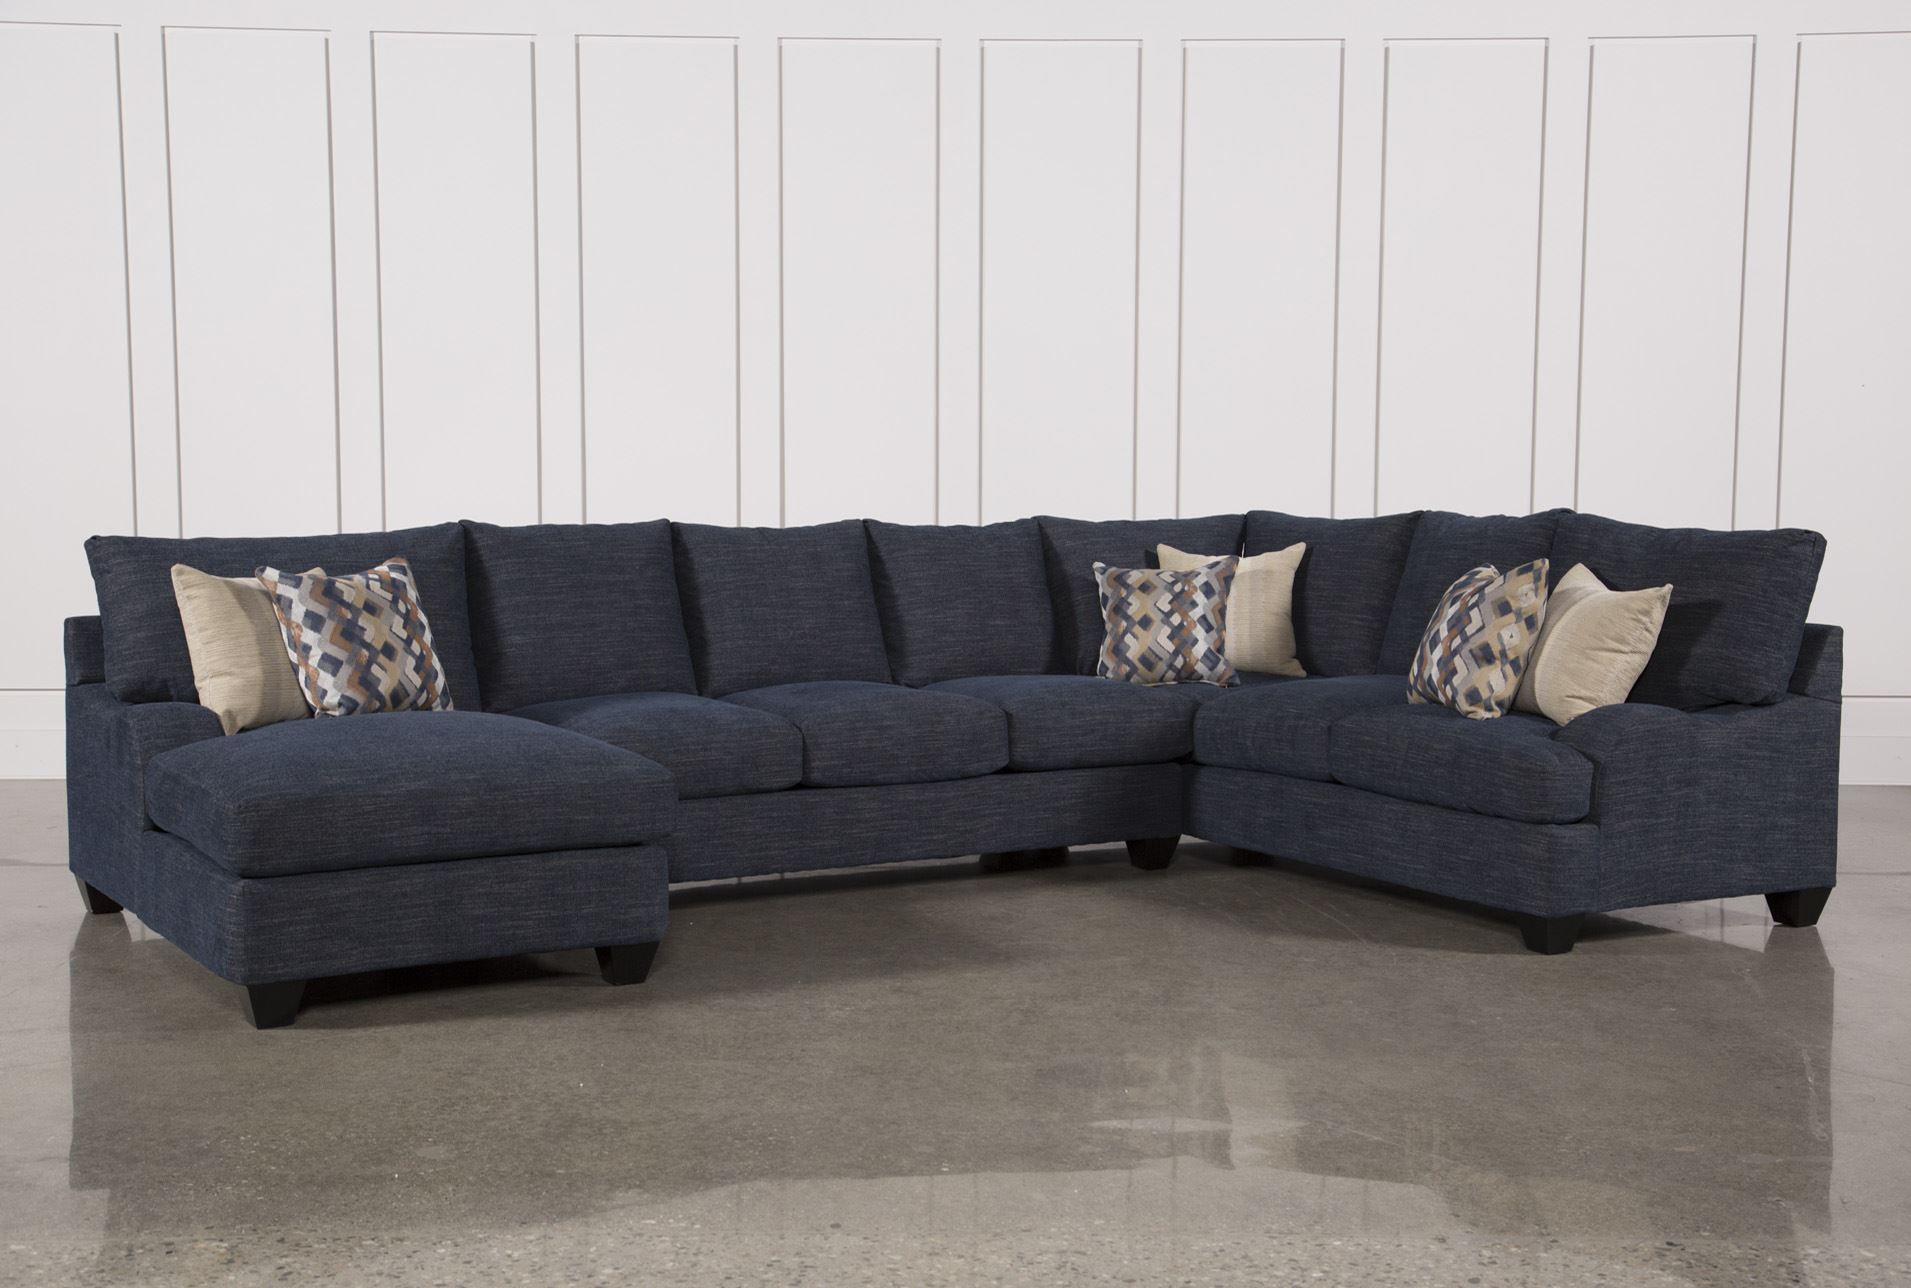 Sierra Down 3 Piece Sectional W/laf Chaise | Sofas And Sectionals For Sierra Foam Ii Oversized Sofa Chairs (View 5 of 25)